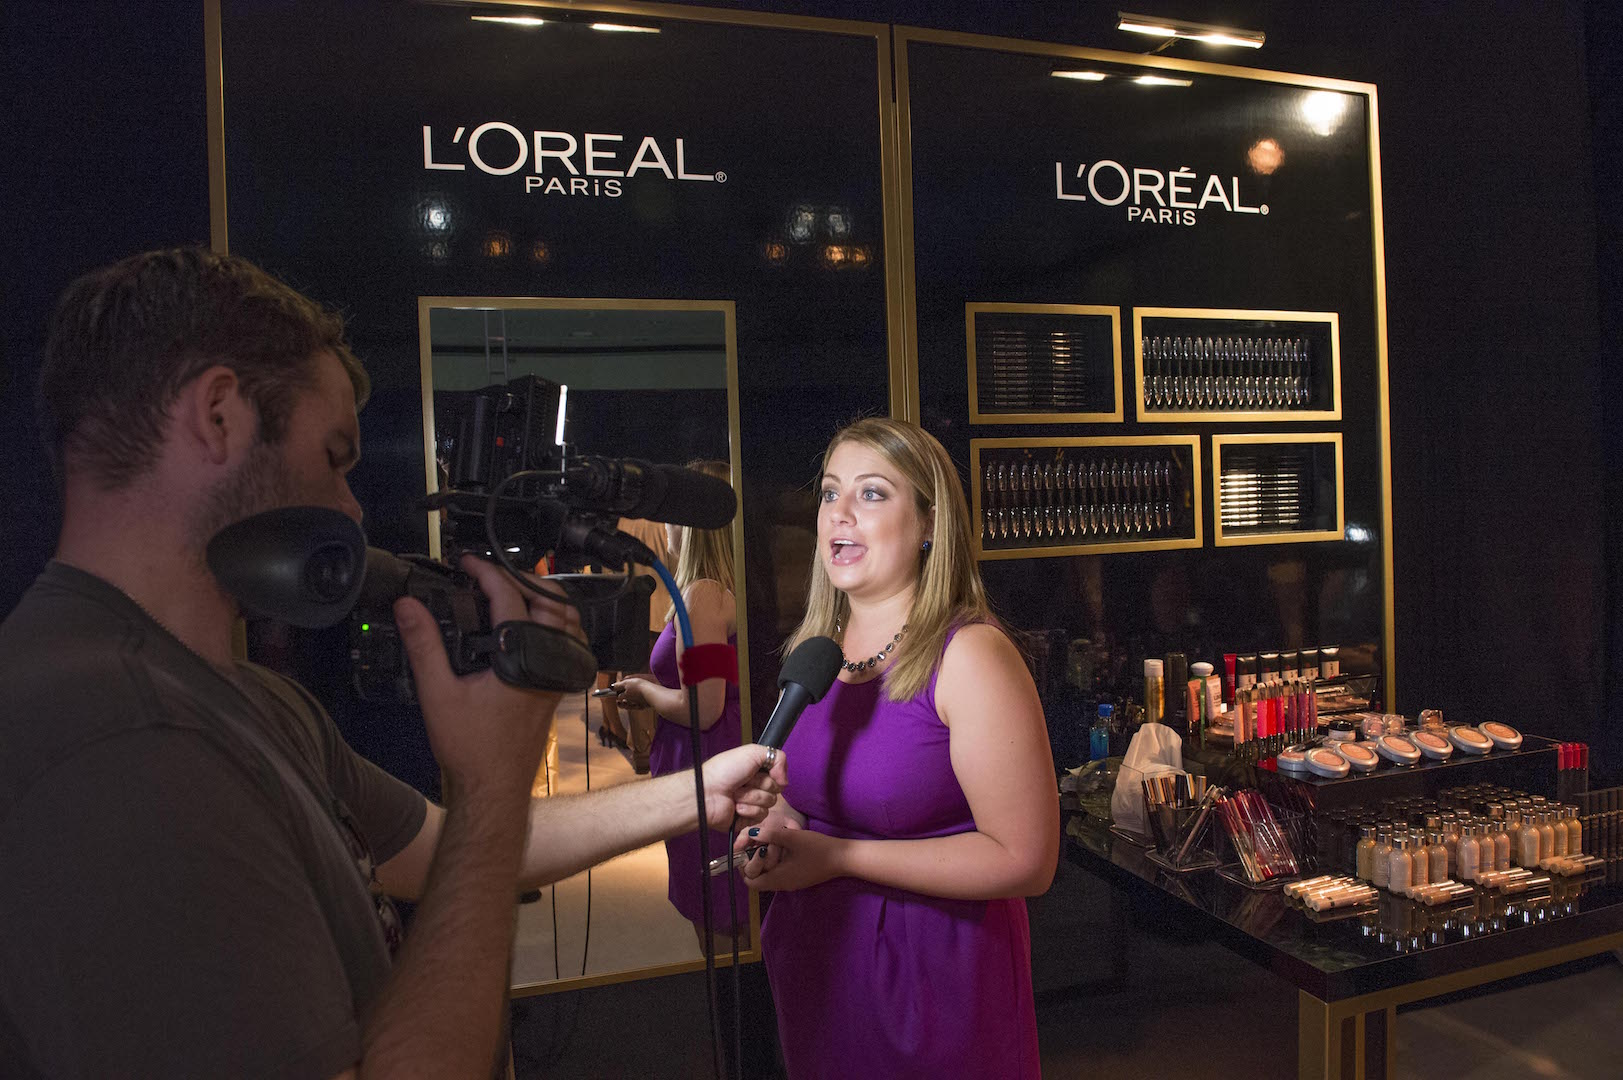 L'Oreal Paris display seen at 67th Emmy Awards Governors Ball Preview at the Los Angeles Convention Center on Wednesday, September 9, 2015, in Los Angeles, California. (Photo by Phil McCarten/Invision for Academy of Television Arts and Sciences/AP Images)